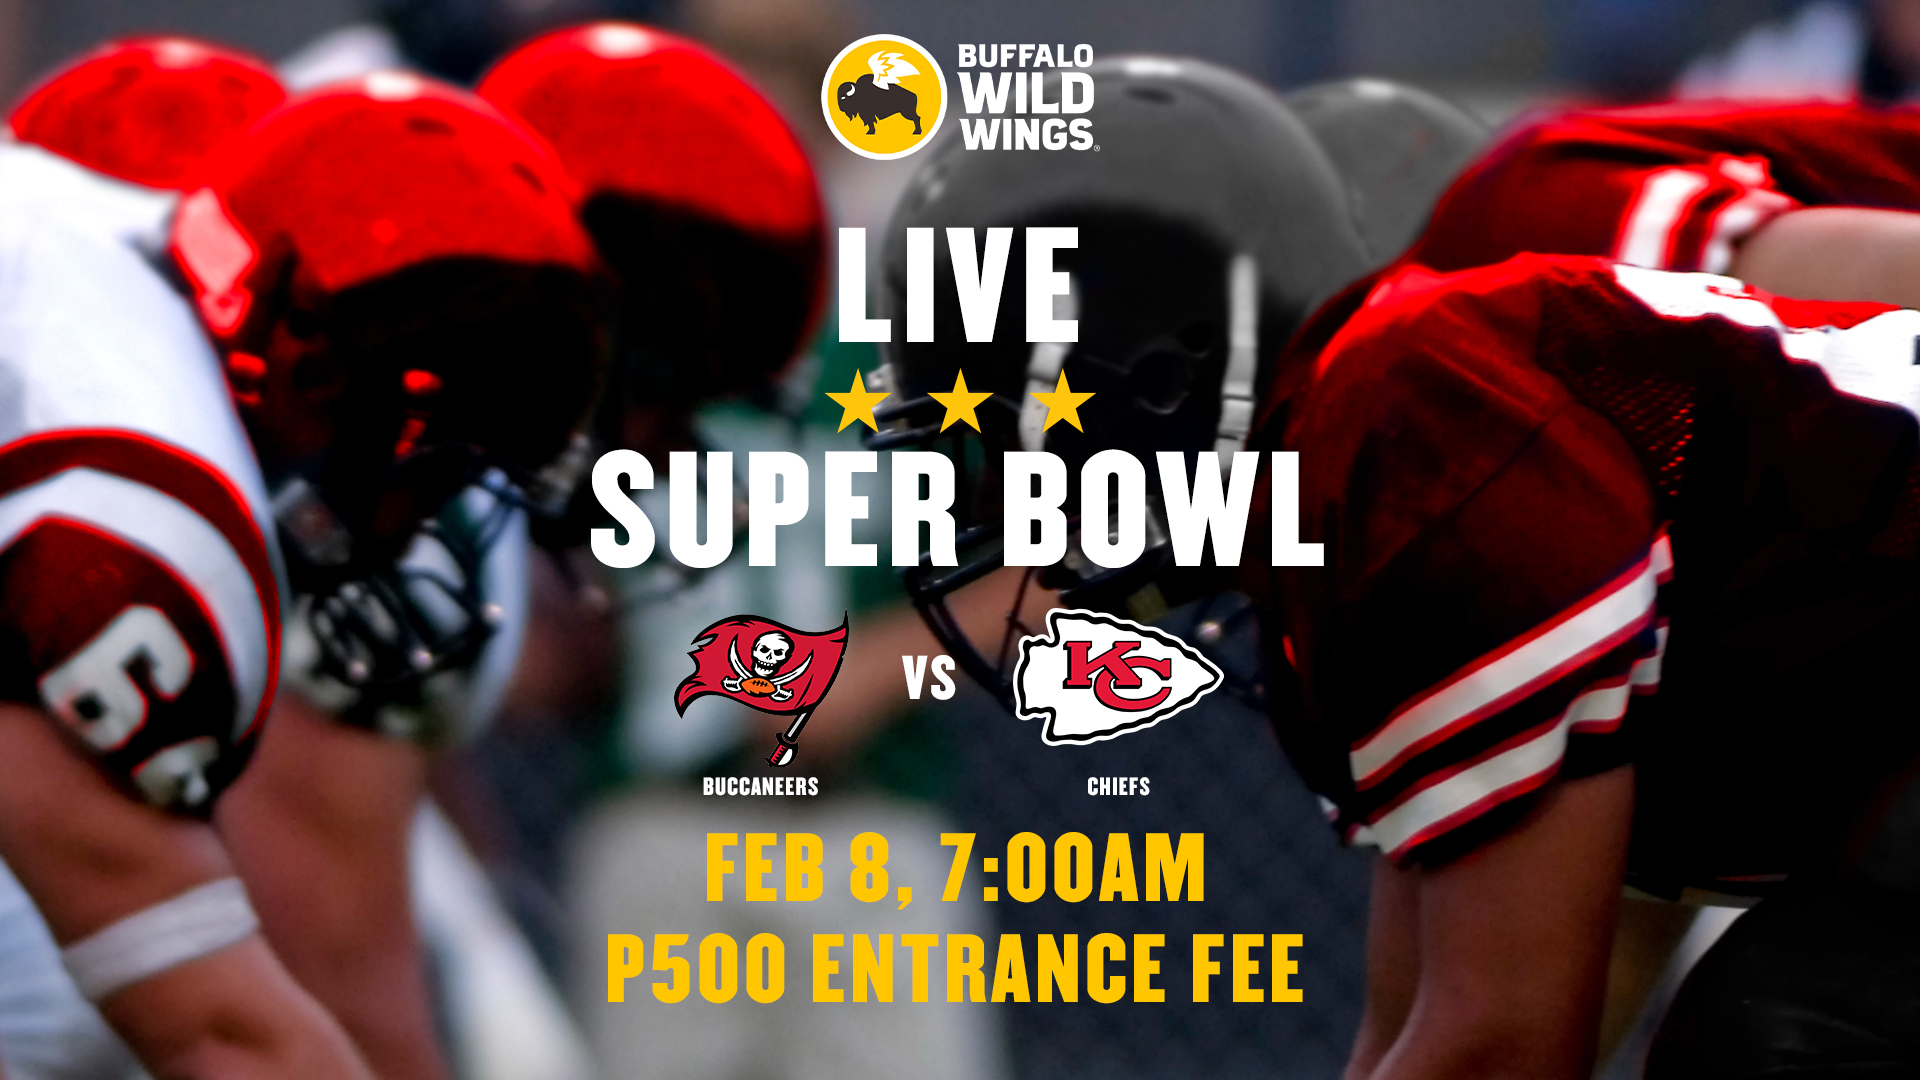 Watch Super Bowl Live at Buffalo Wild Wings on February 8!